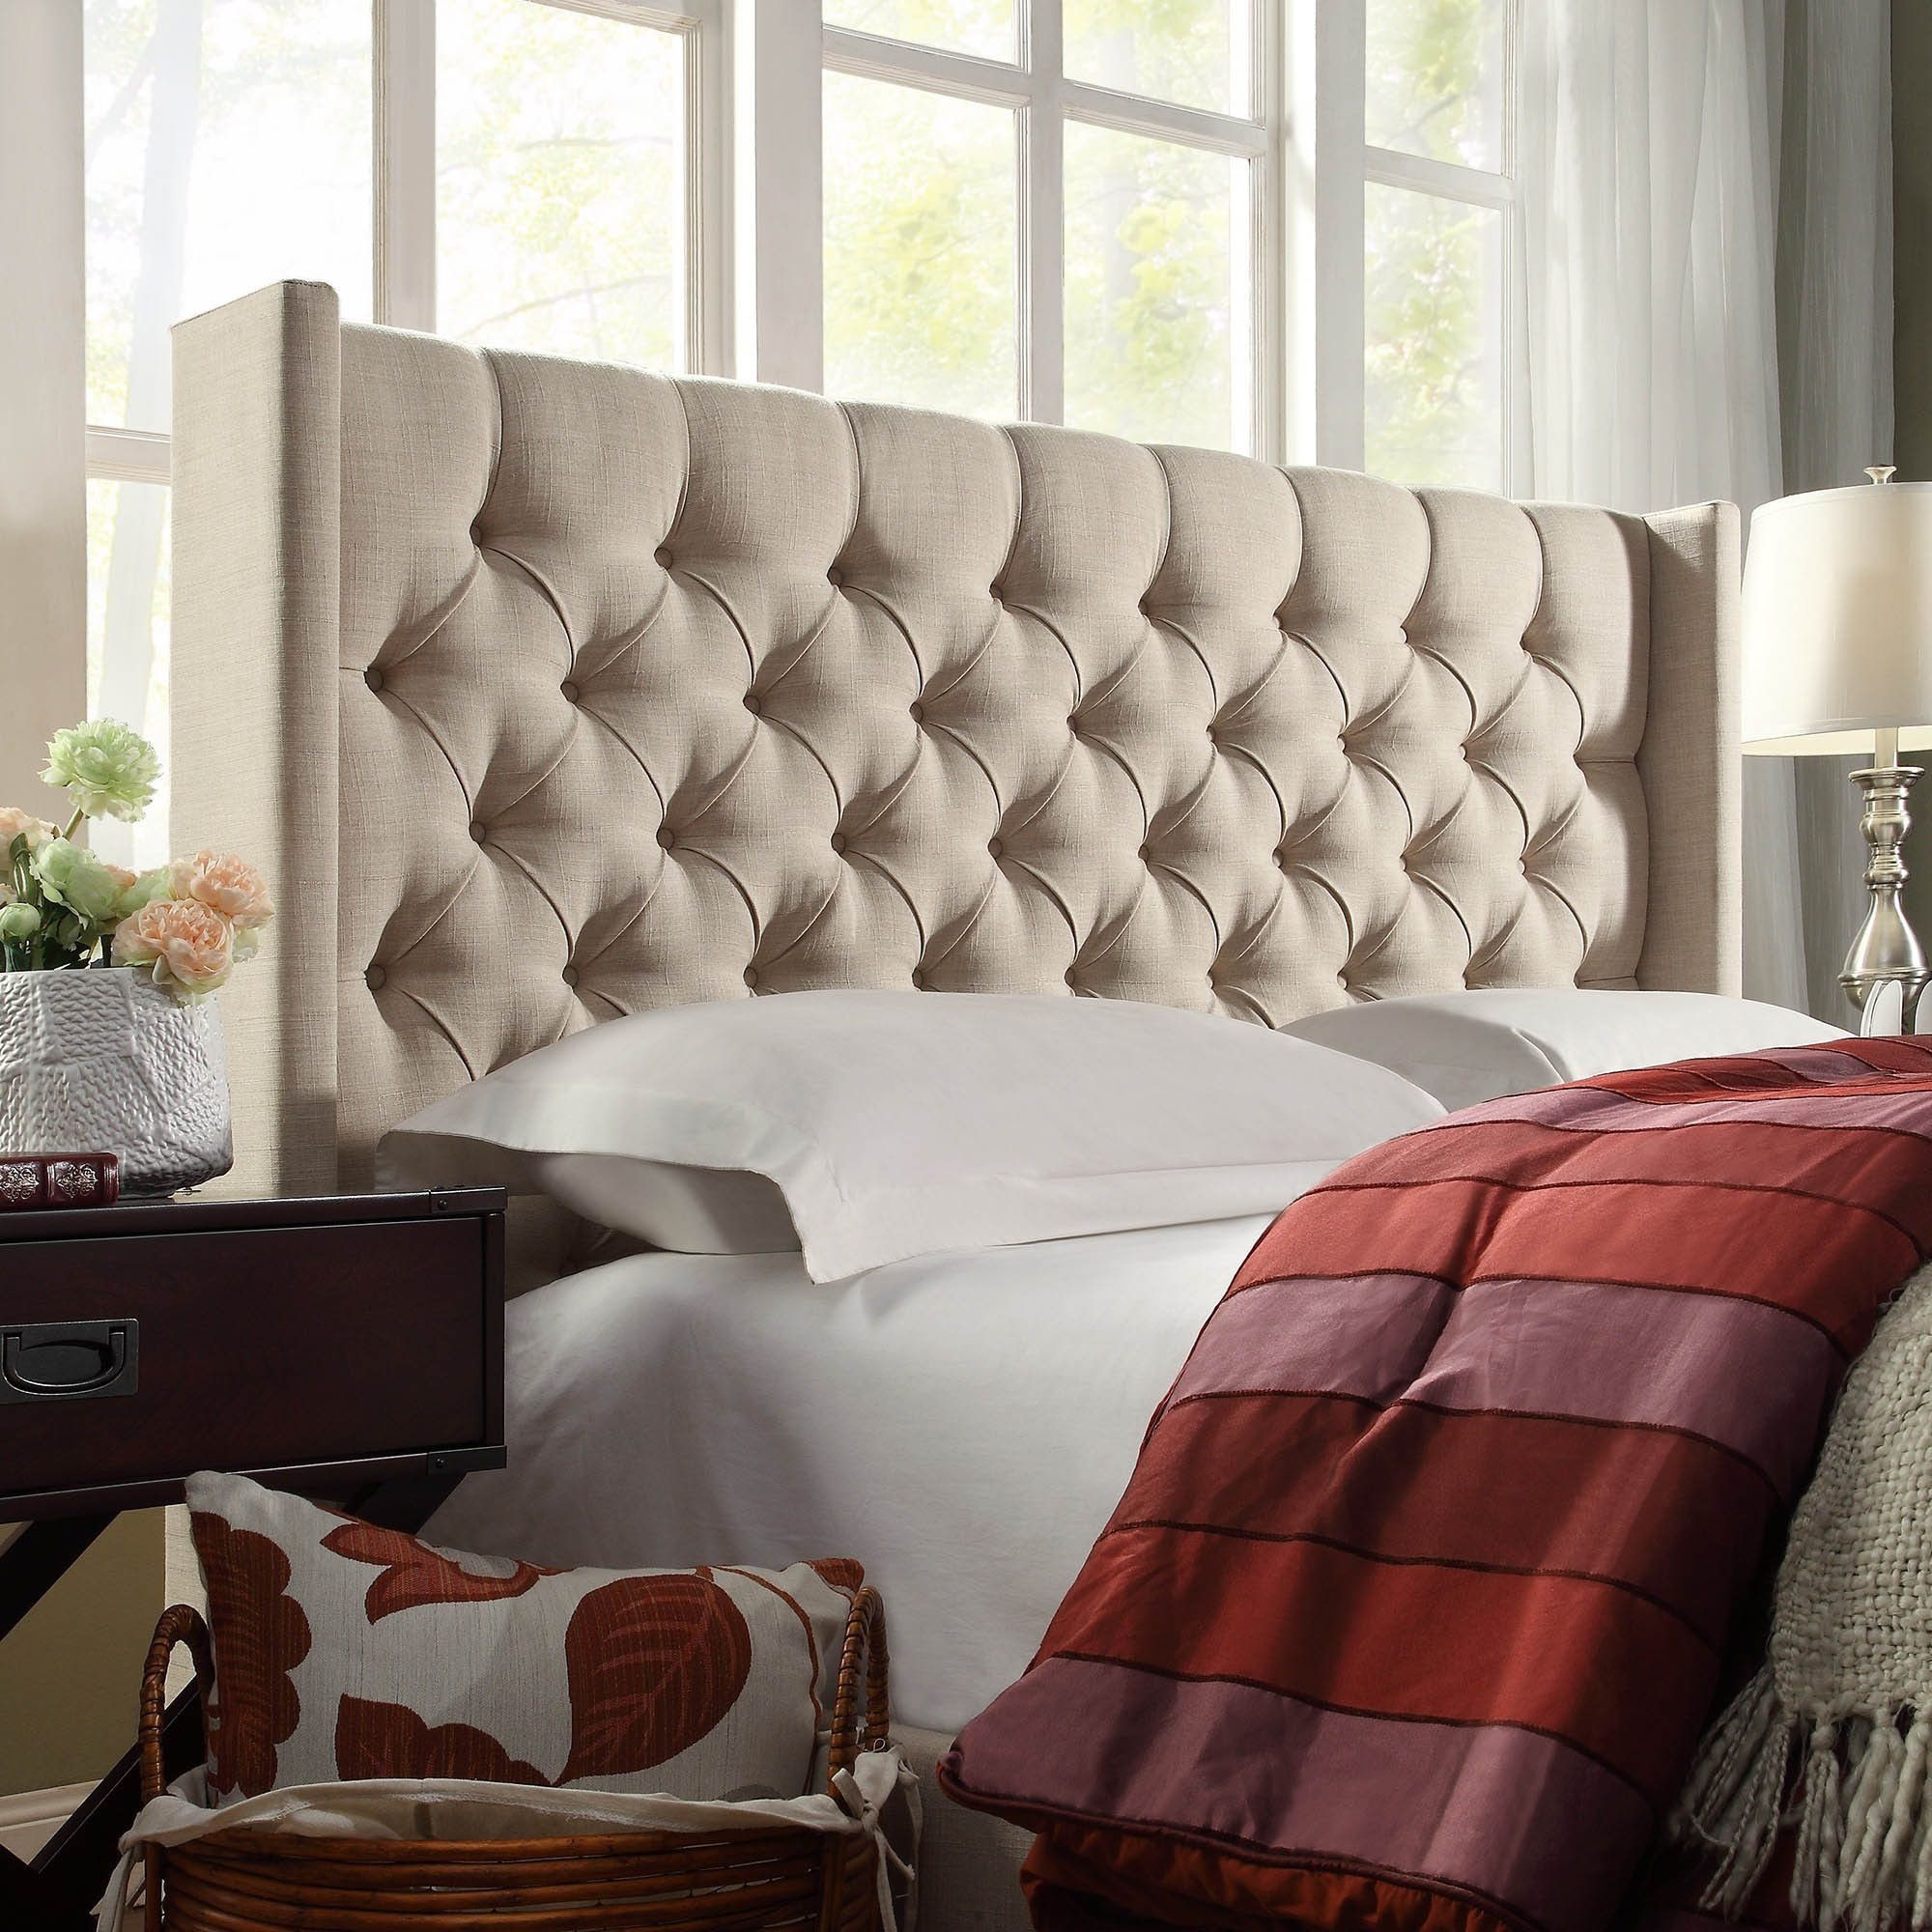 Naples Wingback Button Tufted Linen Fabric Full Size Headboard by iNSPIRE Q  Artisan by iNSPIRE Q